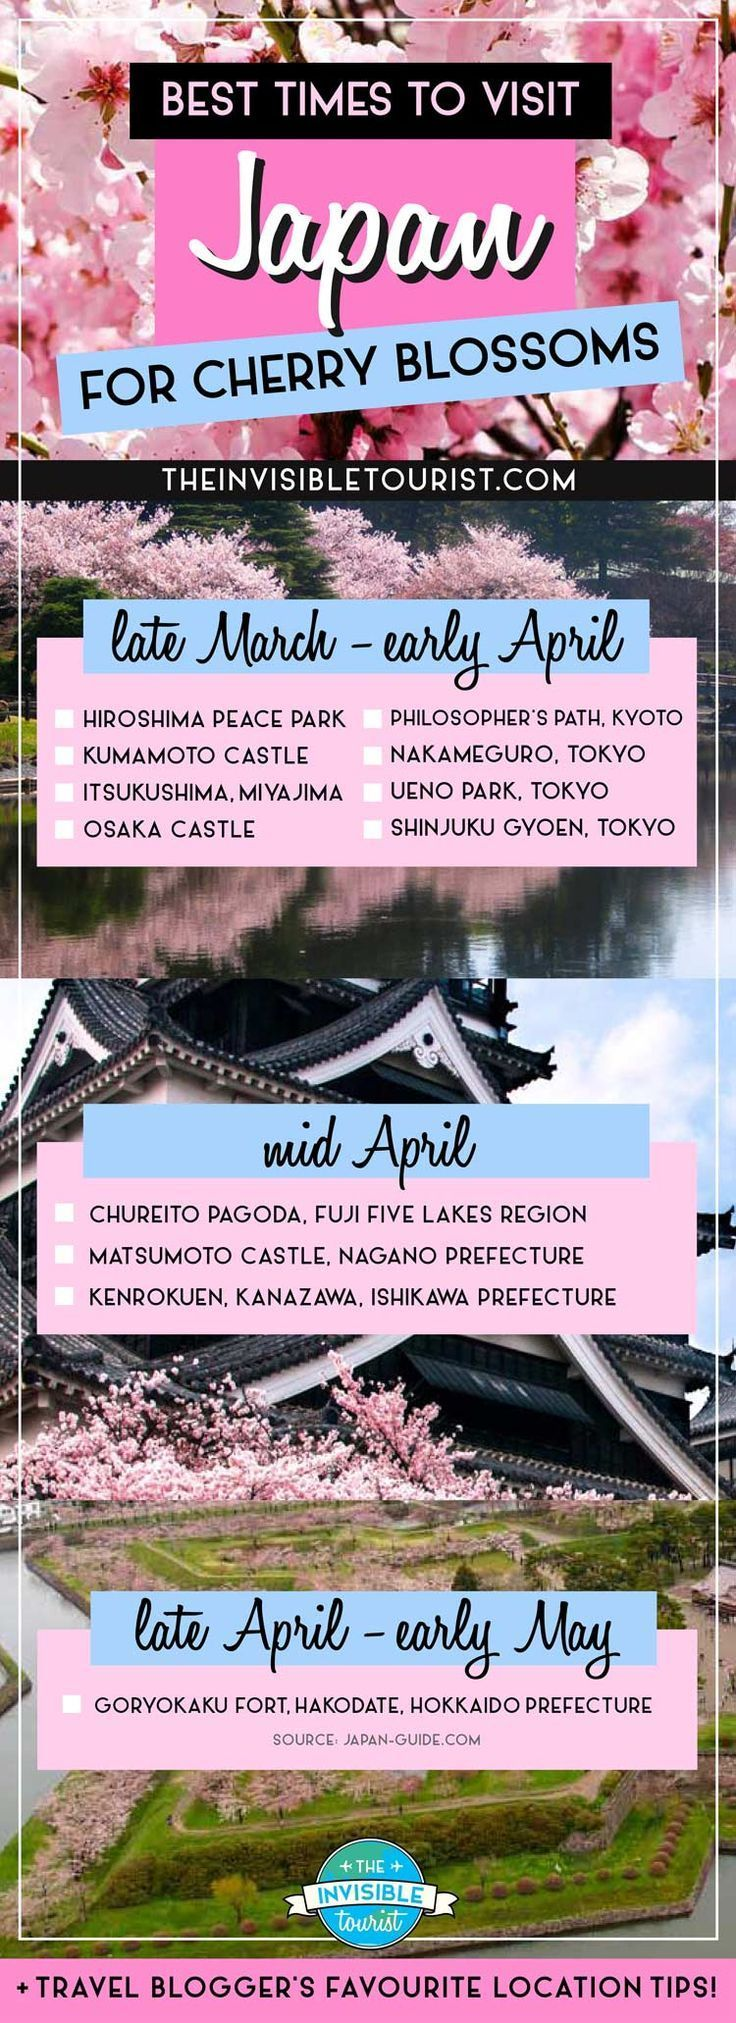 The Best Time to Visit Japan for Cherry Blossoms | The Invisible Tourist #japan #cherryblossoms @love3821